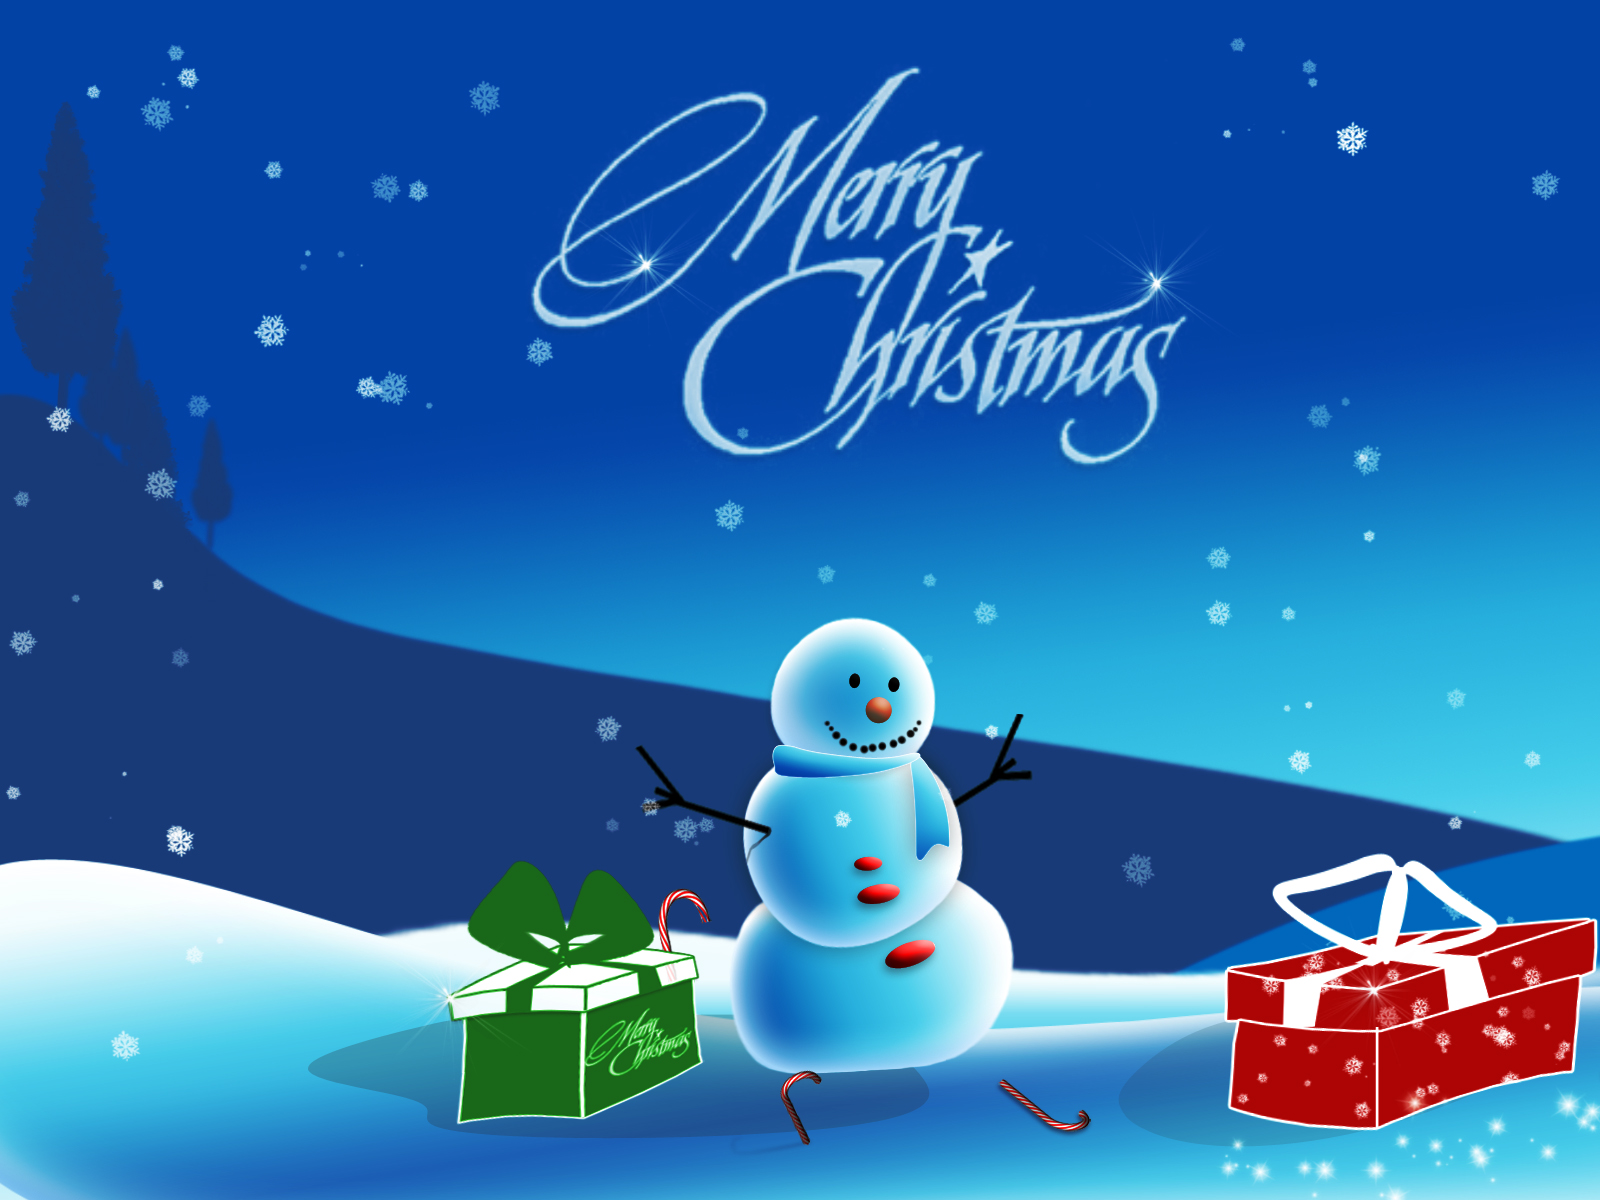 Christmas snowman clip art pictures and background wallpapers,photos ...